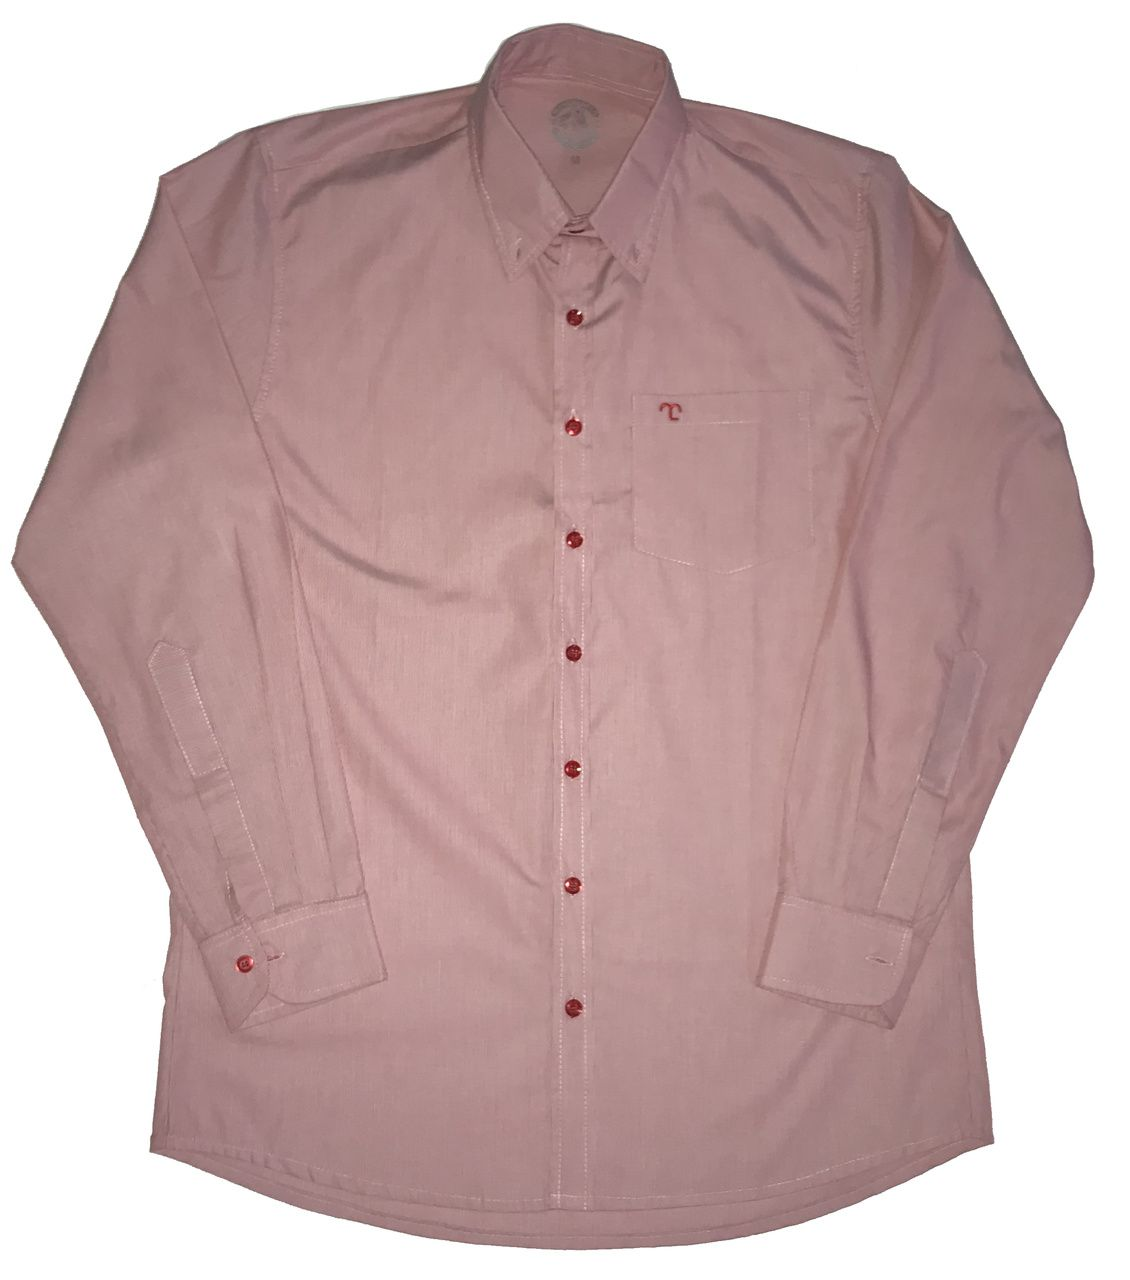 Camisa Social Mangalarga Chancela Listras  - Boutique Mangalarga